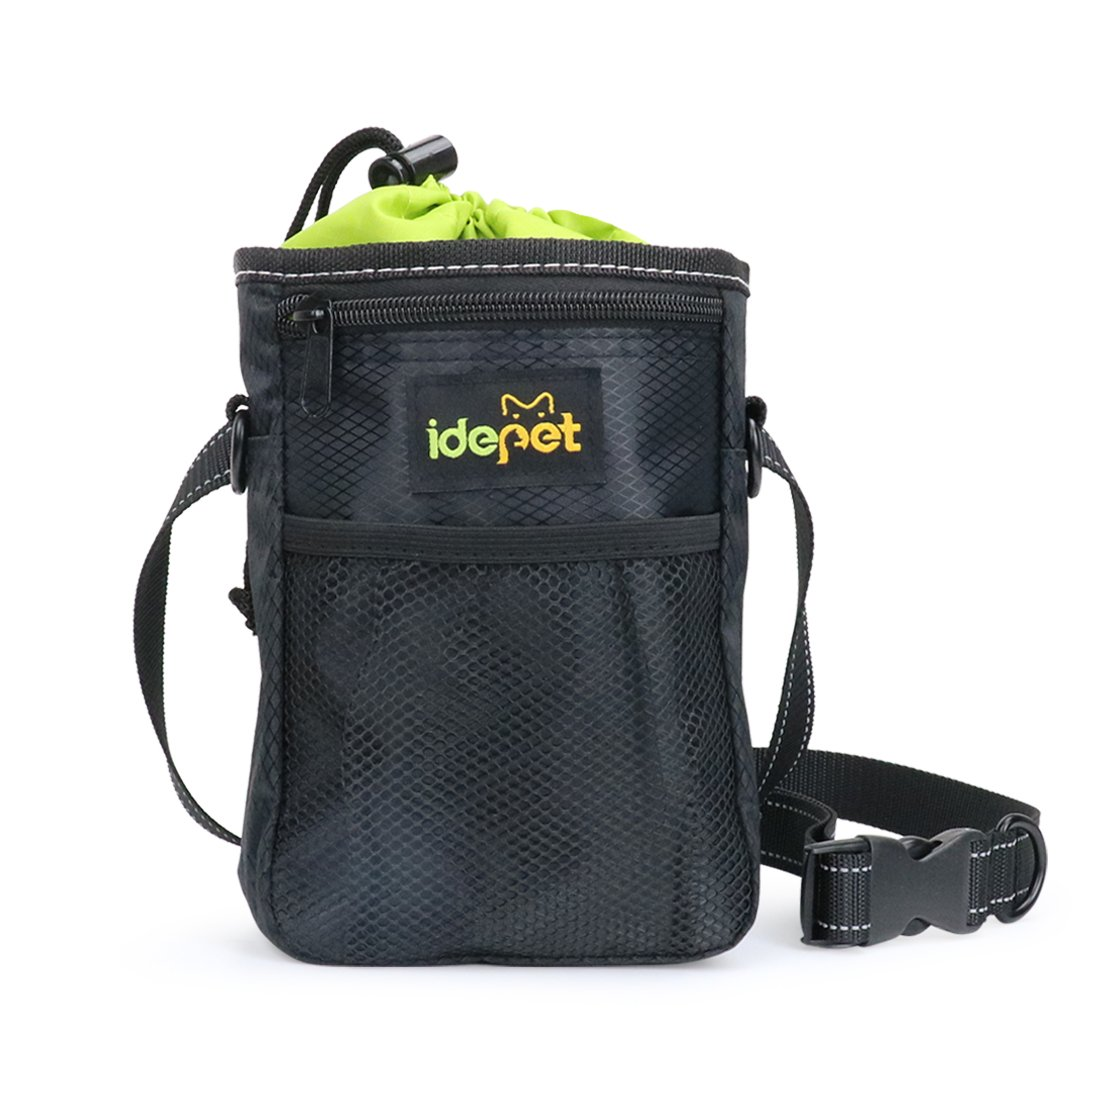 Idepet Dog Treat Pouch with Waste Bags Dispenser,Waterproof Pet Training Bag,Adjustable Dogs Pouch To Carry Dog Training Treats,Toys,Snack,Phones,Keys for Walking,Running and Training